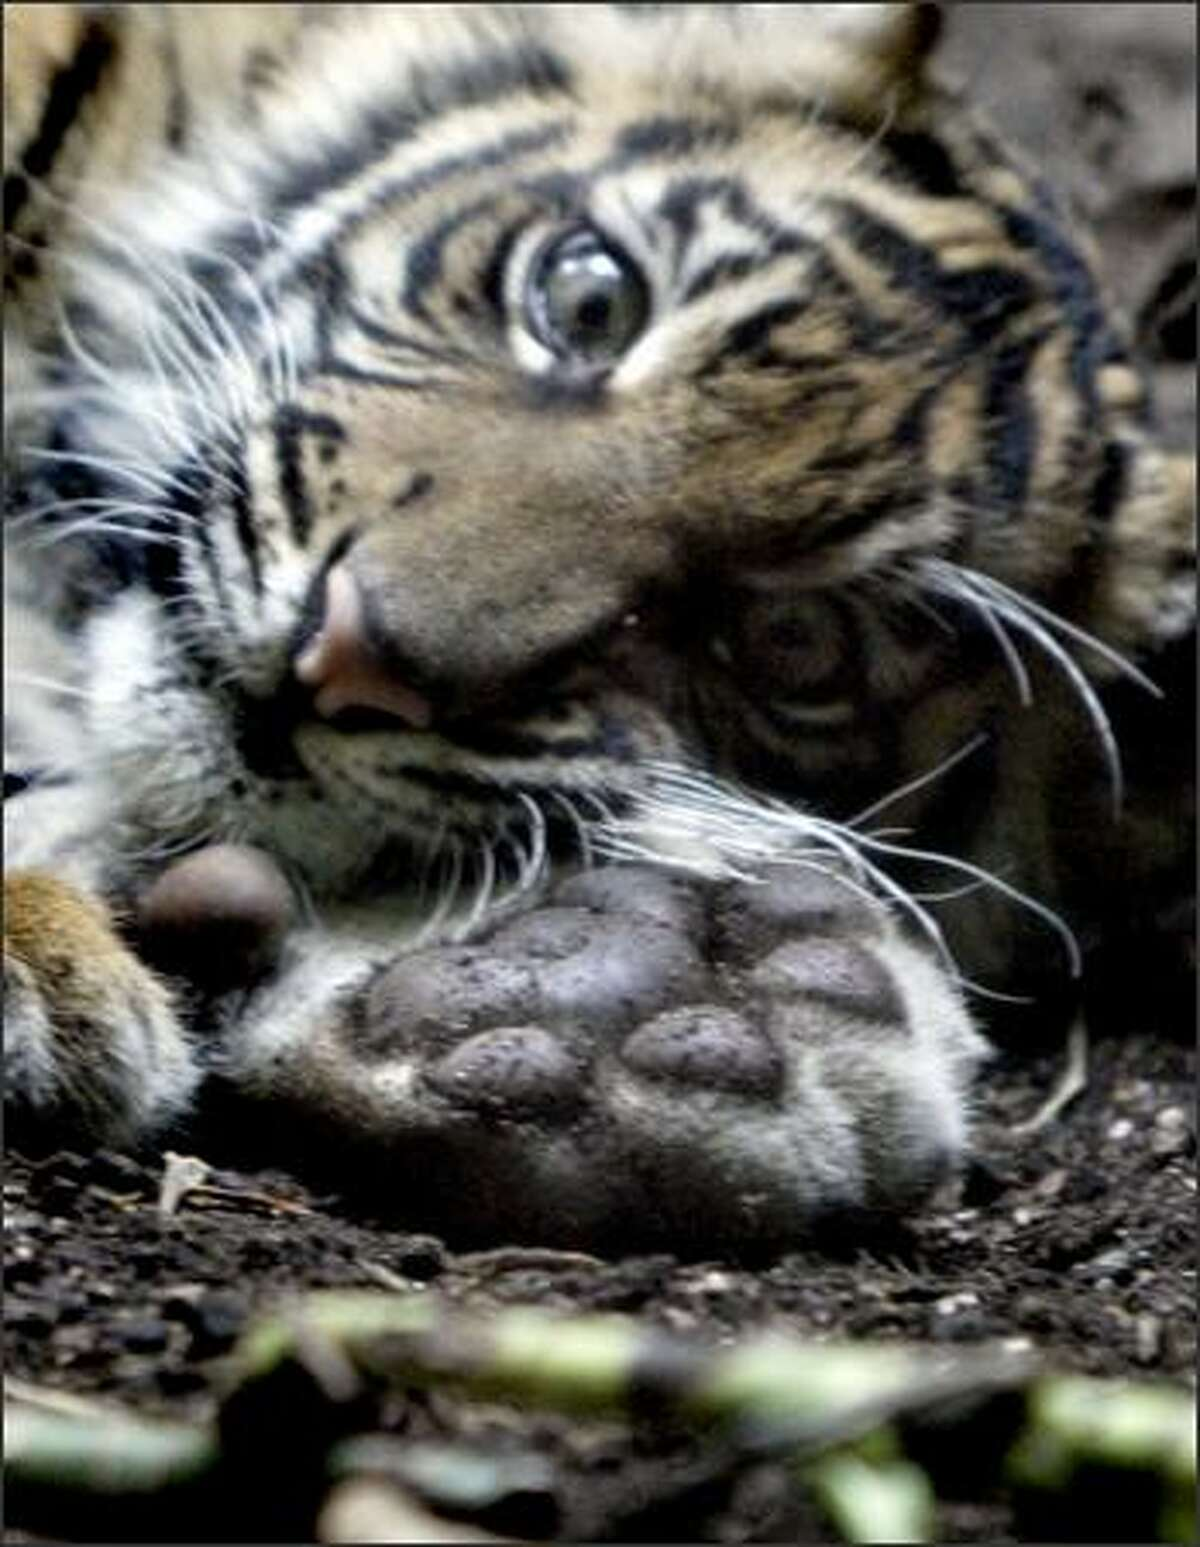 Hadia's dirty paw is displayed as she takes a short rest. The female Sumatran tiger cub was put on display for the first time Monday at the Woodland Park Zoo. The cub's name, which means